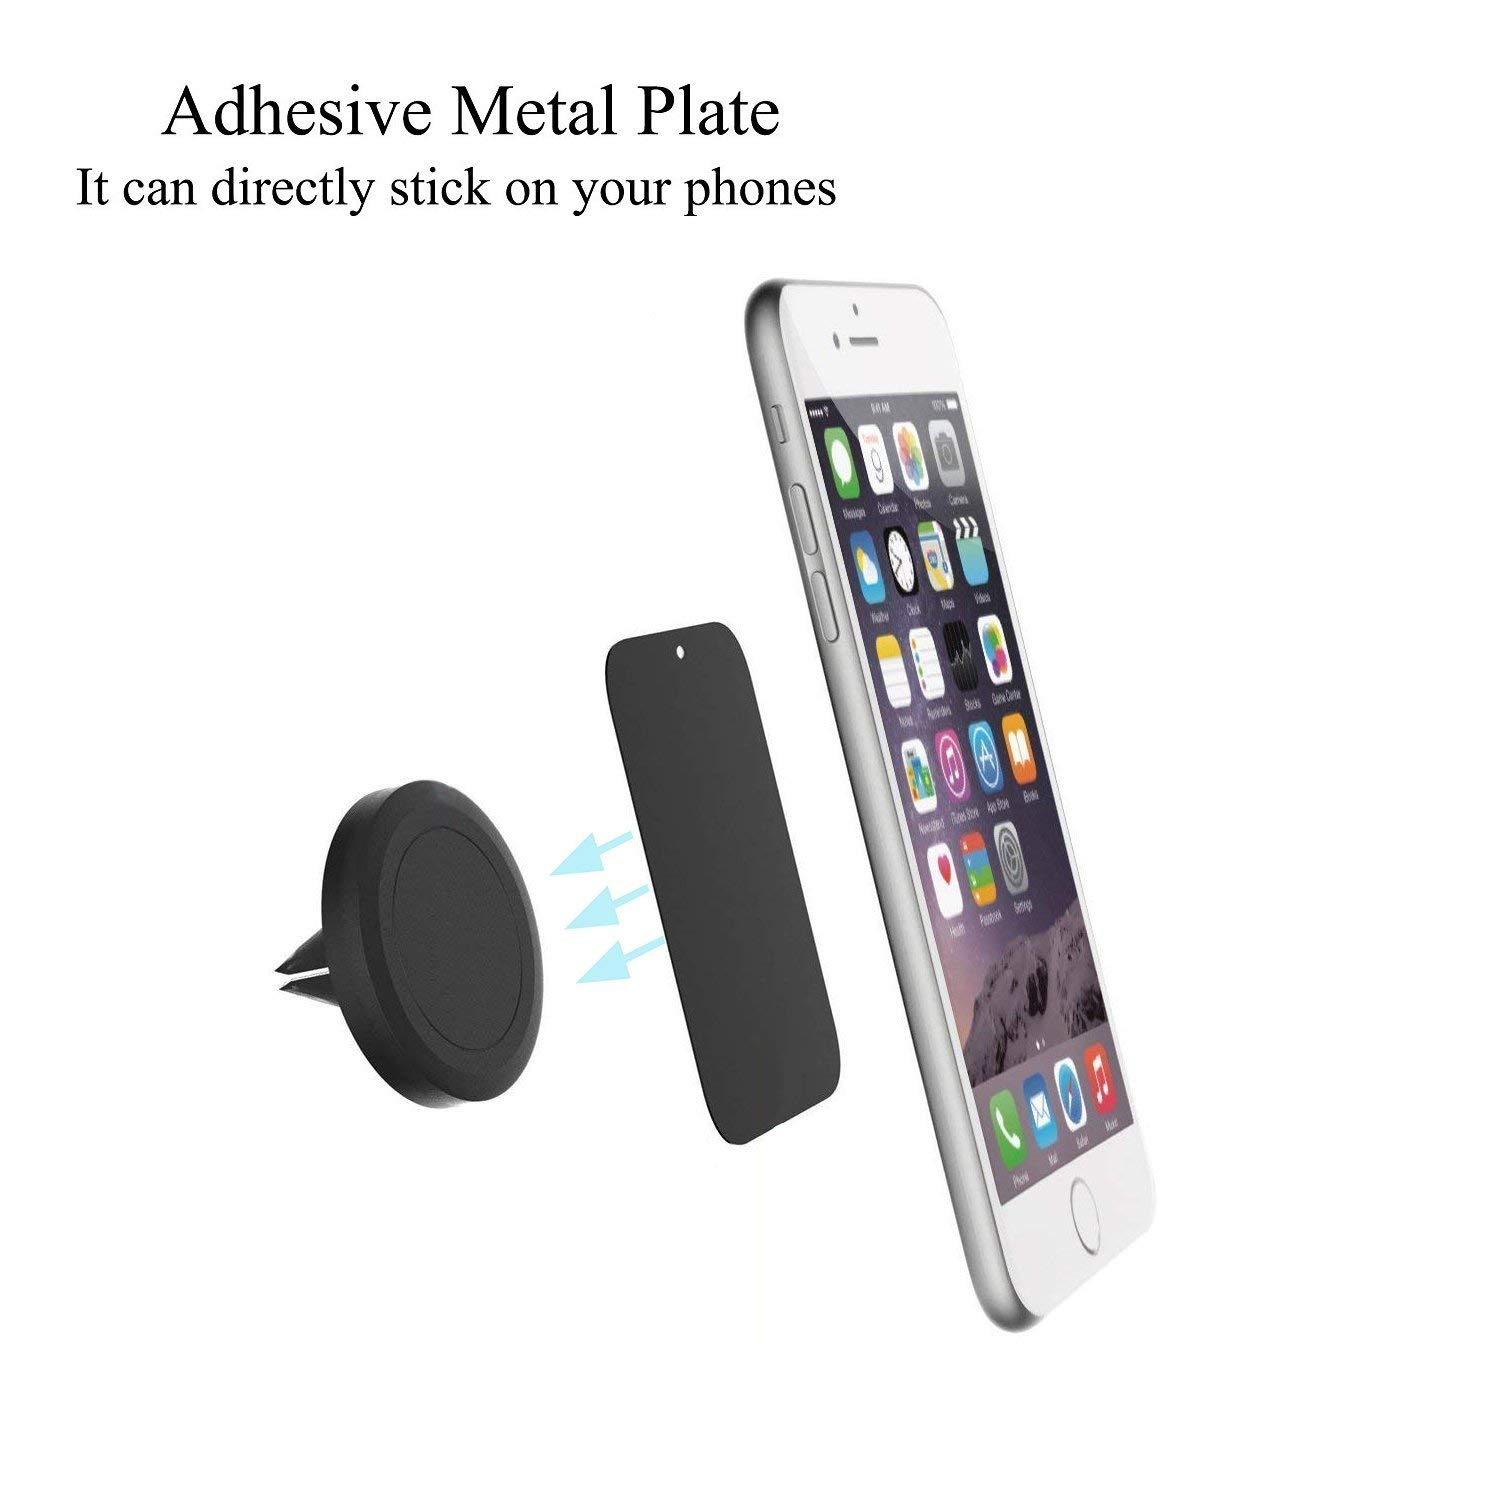 8PACK Metal Plates with Full Adhesive for Magnetic Car Mount Phone Holder Uuustar Metal Plates for Magnetic Mount